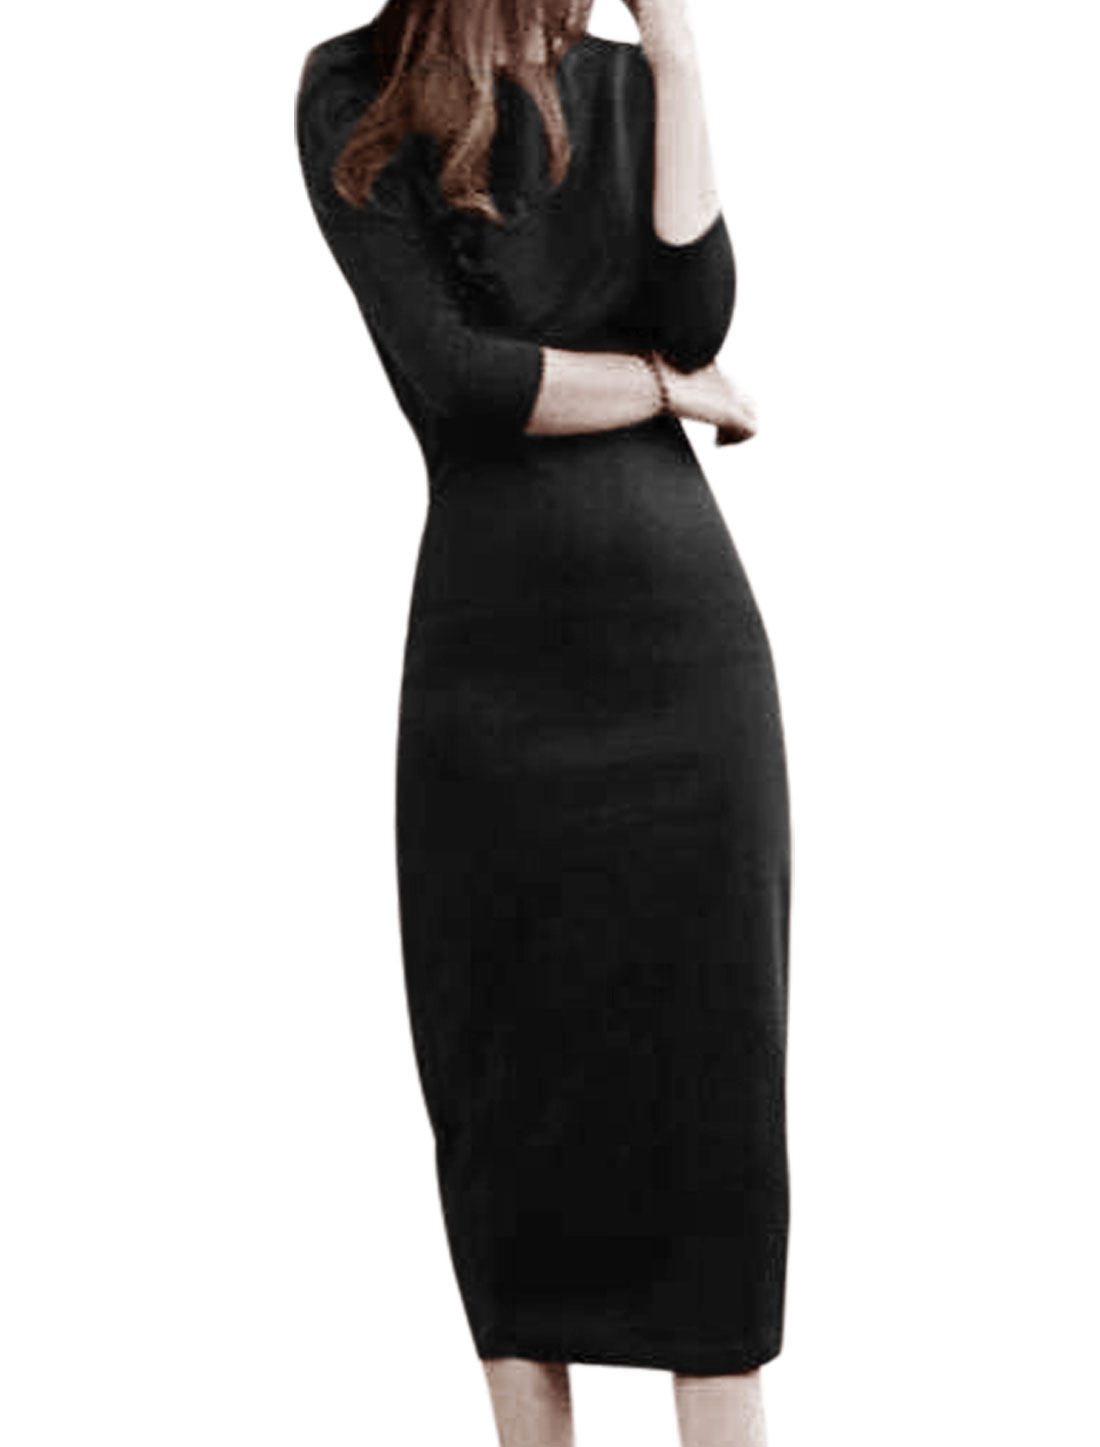 Women Split Back Design 3/4 Sleeves Sheath Dress Black XS